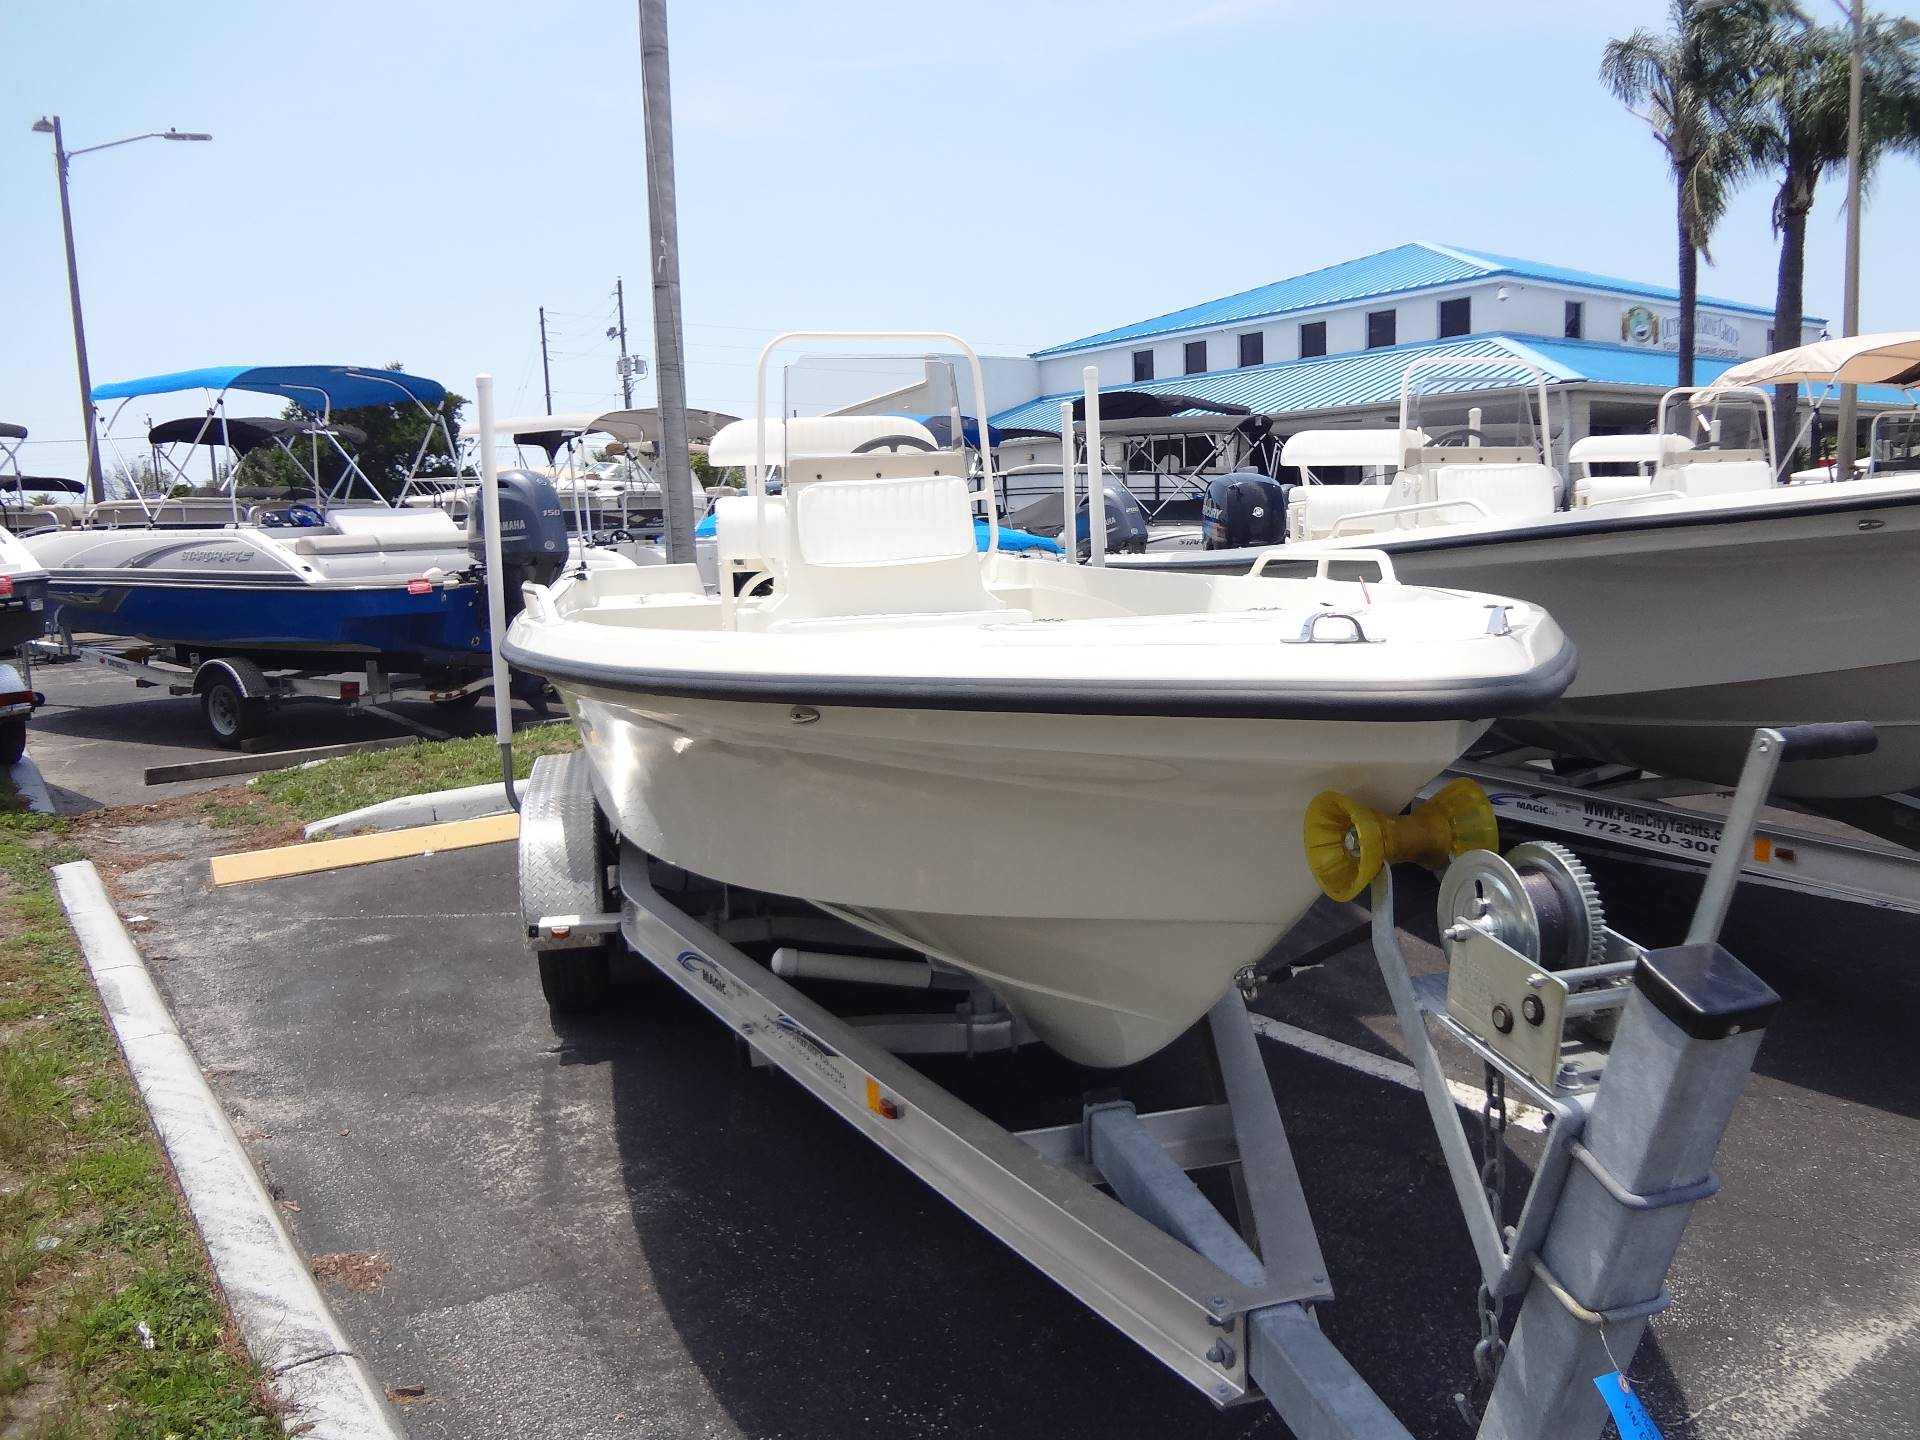 2020 Stott Craft SCV 202 in Holiday, Florida - Photo 2